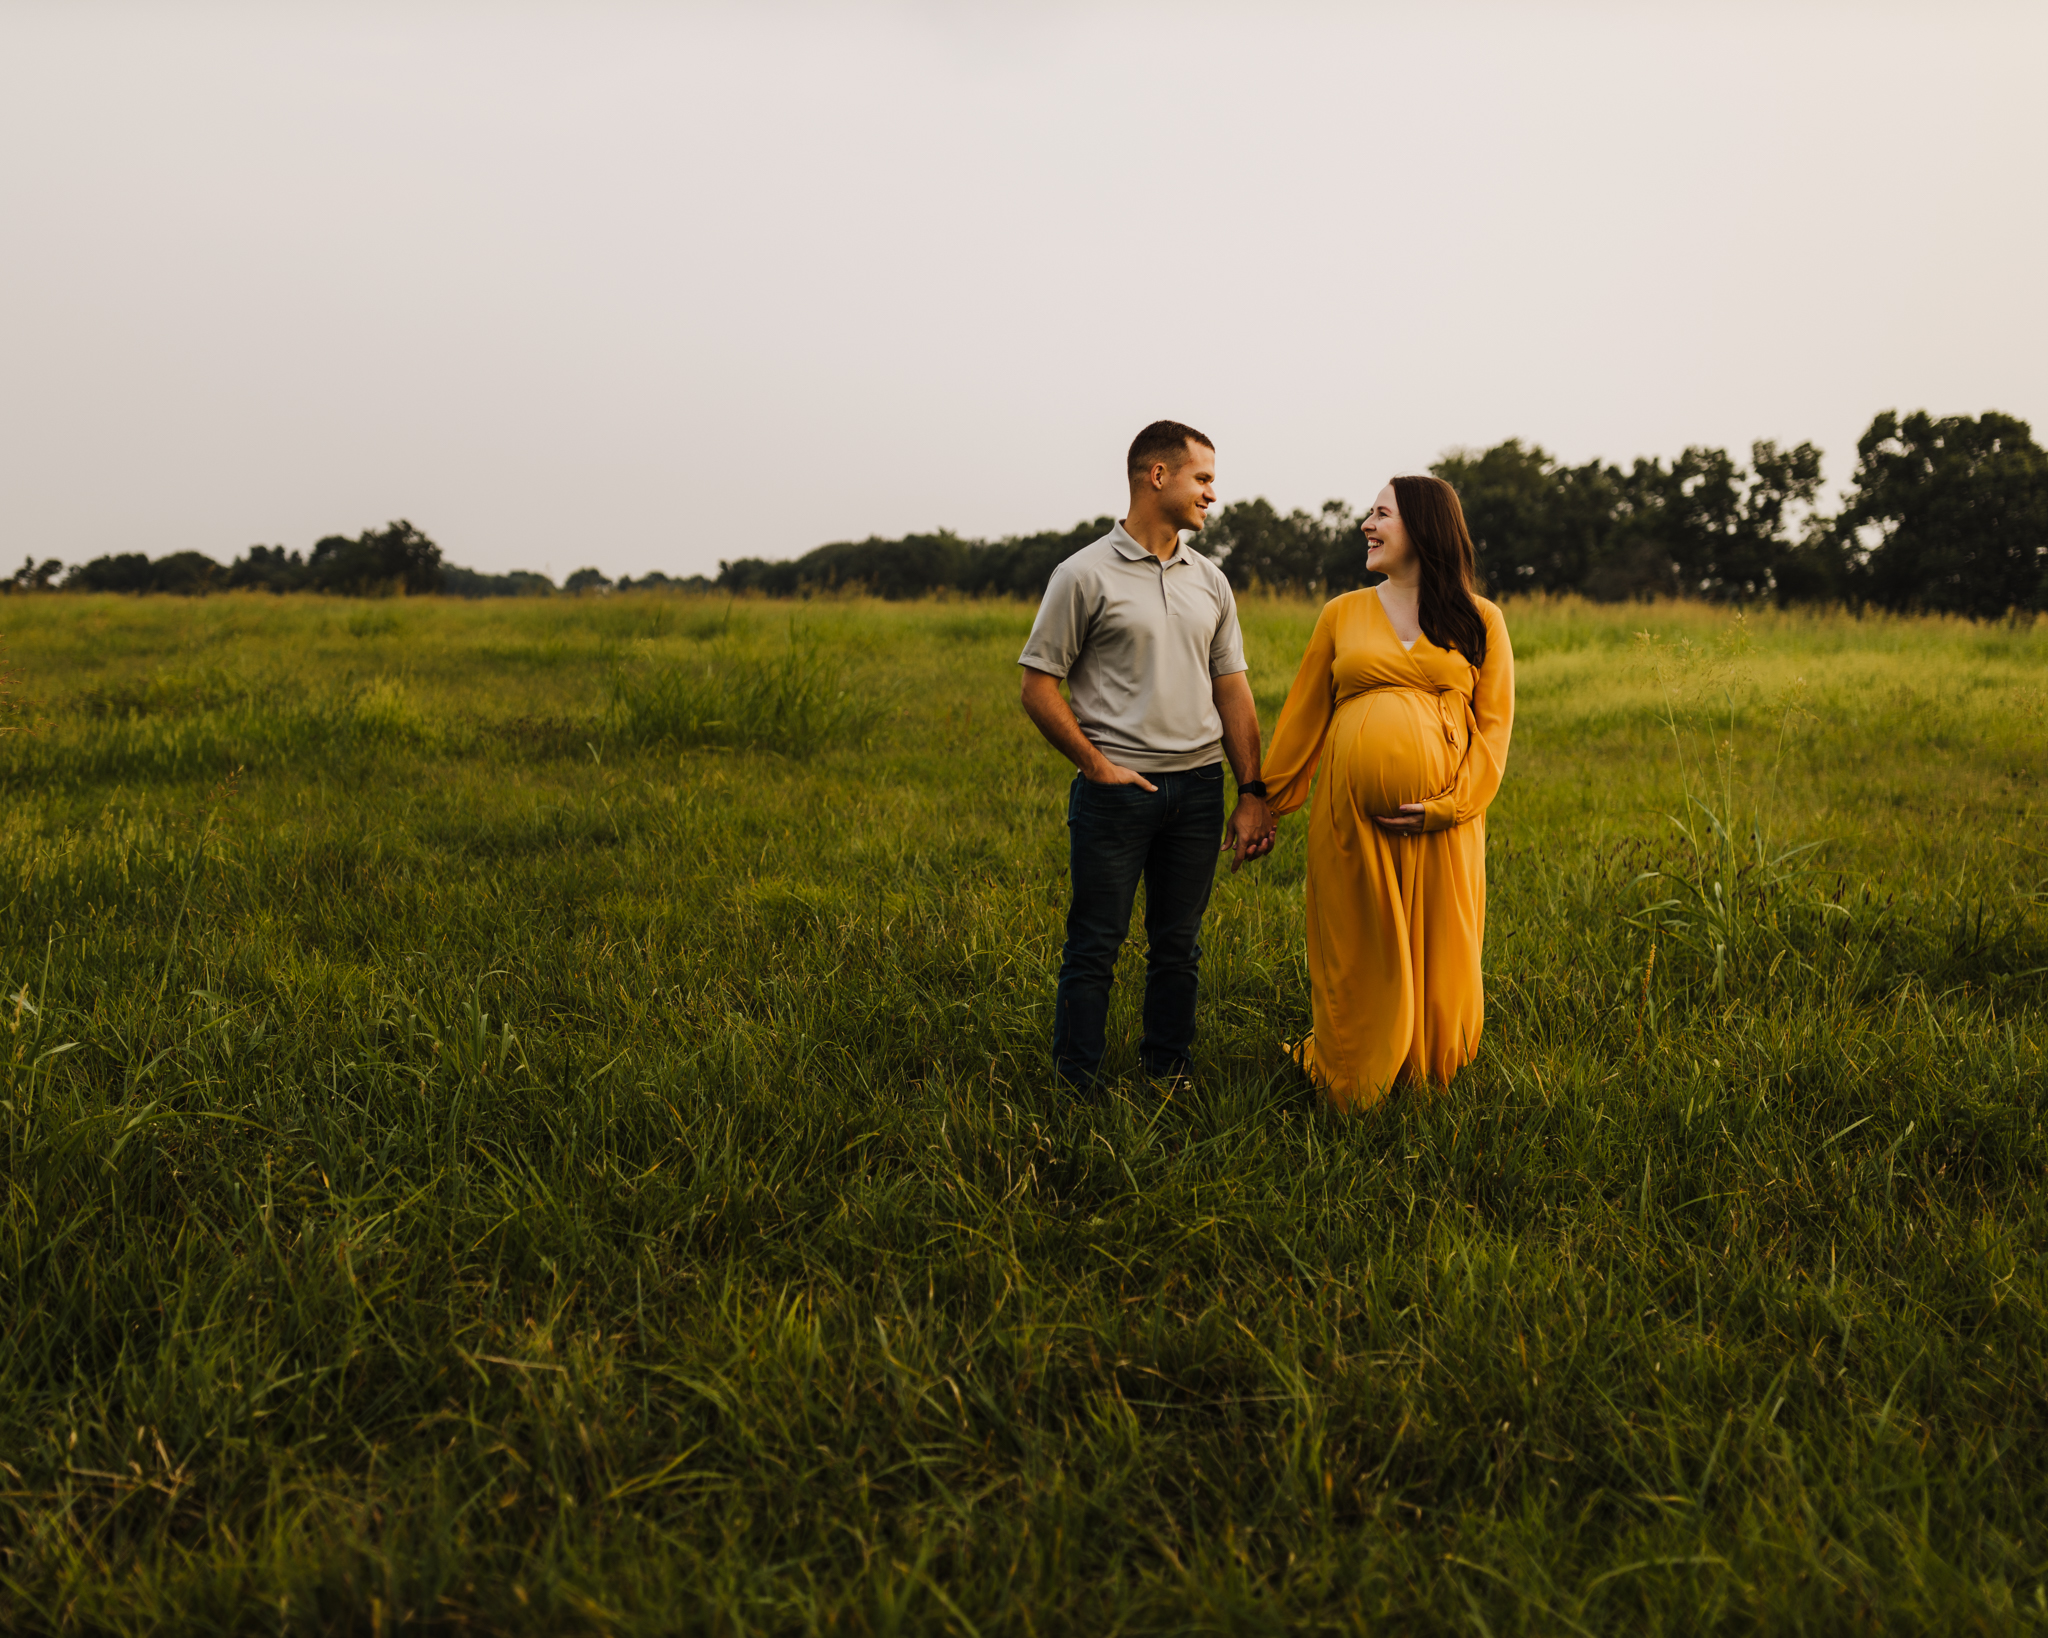 maternity images done in open field with mom wearing a yellow/orange dress